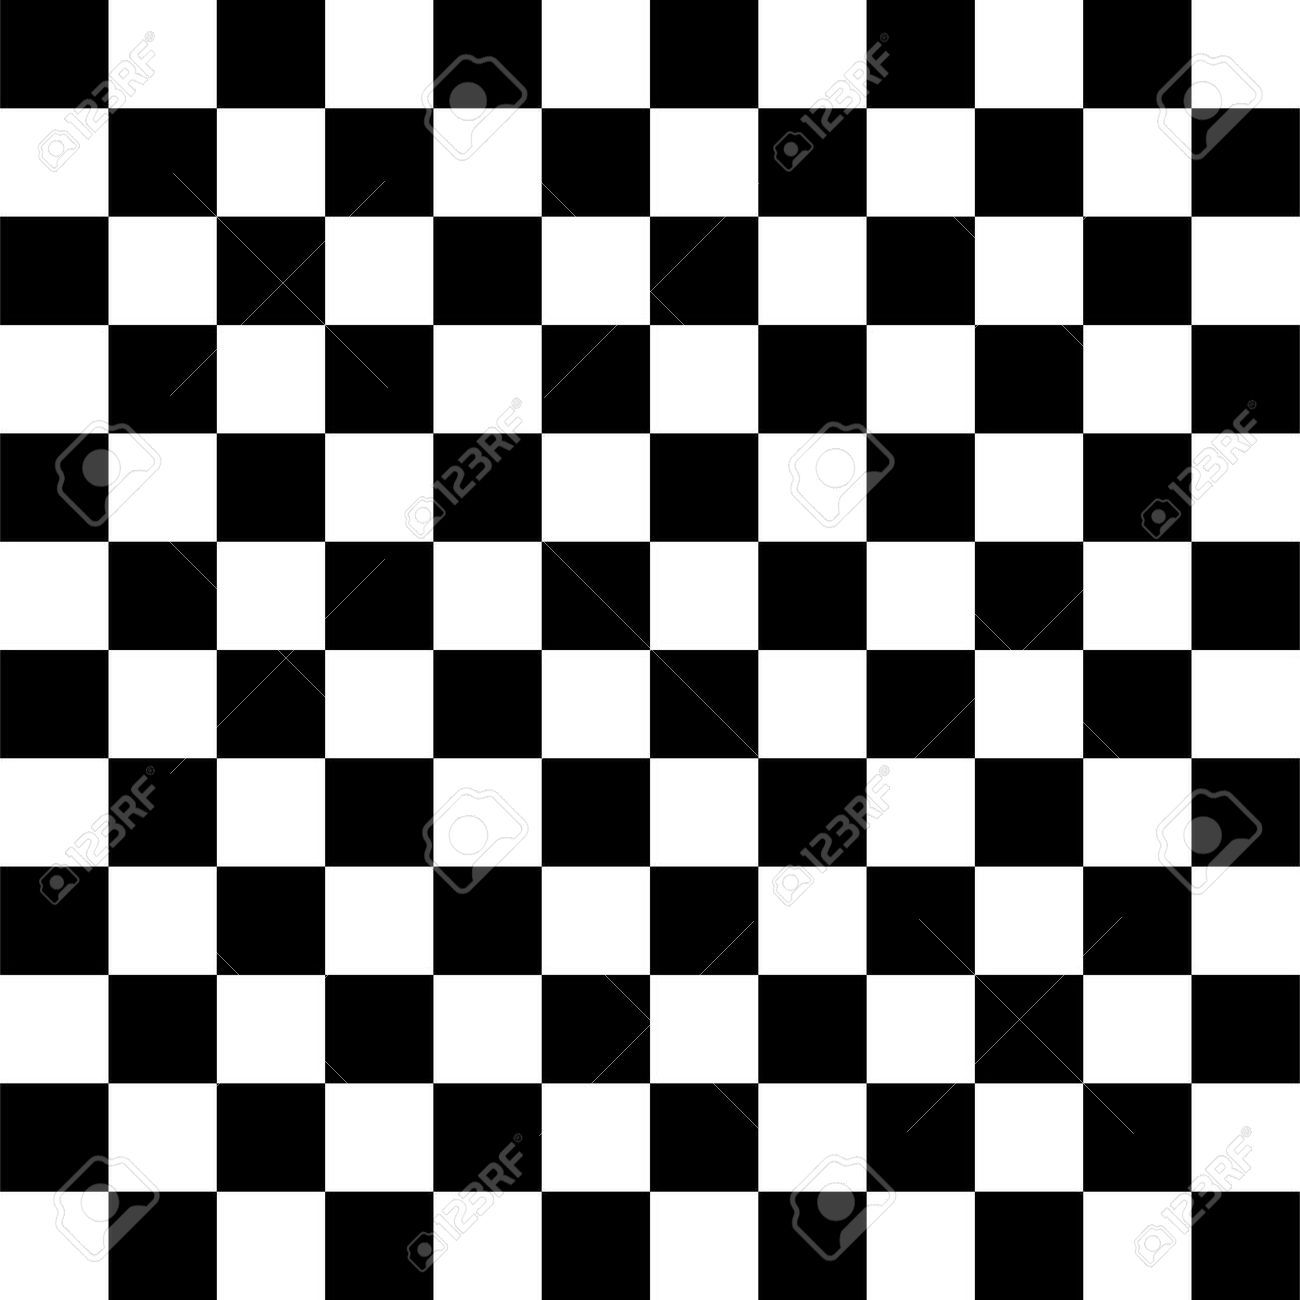 Simple Black And White Checkered Abtract Background Illustration